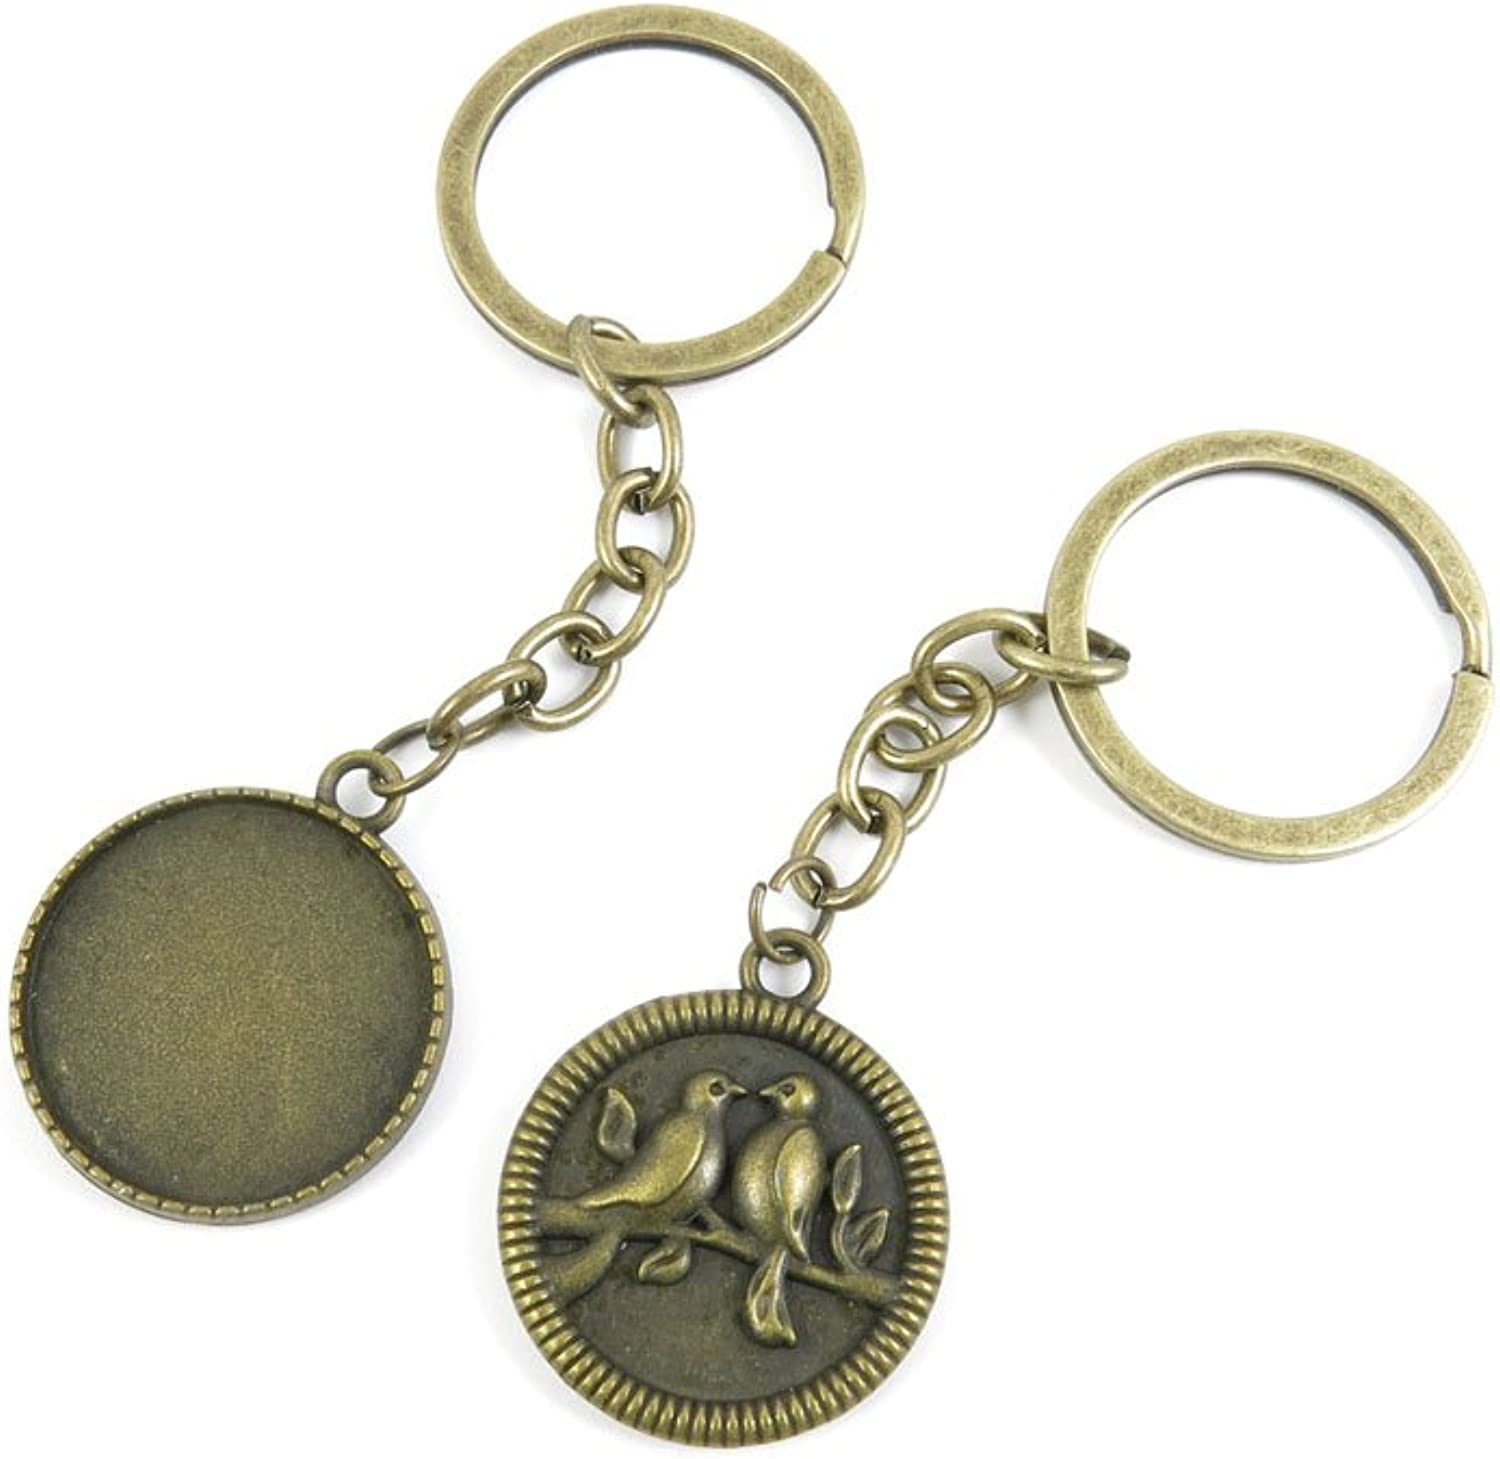 130 Pieces Fashion Jewelry Keyring Keychain Door Car Key Tag Ring Chain Supplier Supply Wholesale Bulk Lots I9WH1 Birds Cabochon Frame Blanks